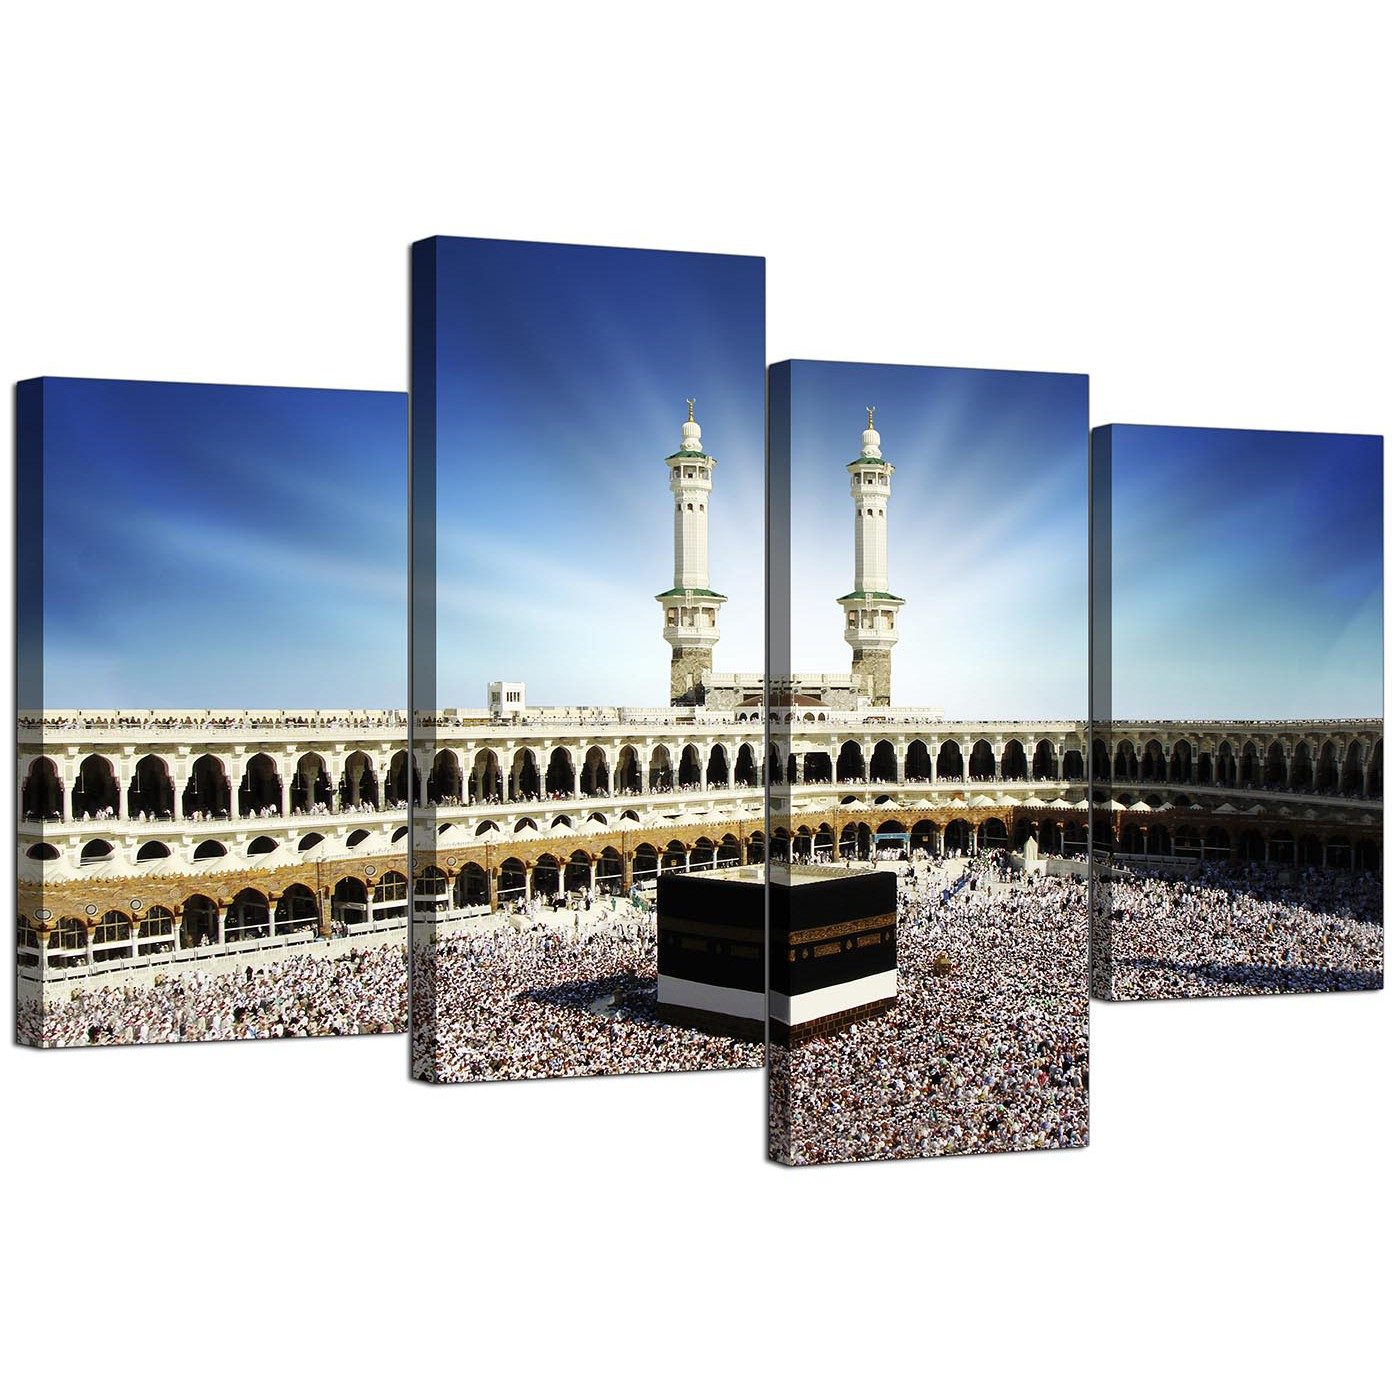 Display Gallery Item 4; Cheap Canvas Prints Hallway 130cm x 68cm 4191 Display Gallery Item 5  sc 1 st  Wallfillers & Islamic Canvas Wall Art of Kaaba Hajj in Mecca for Muslims - Set of 4